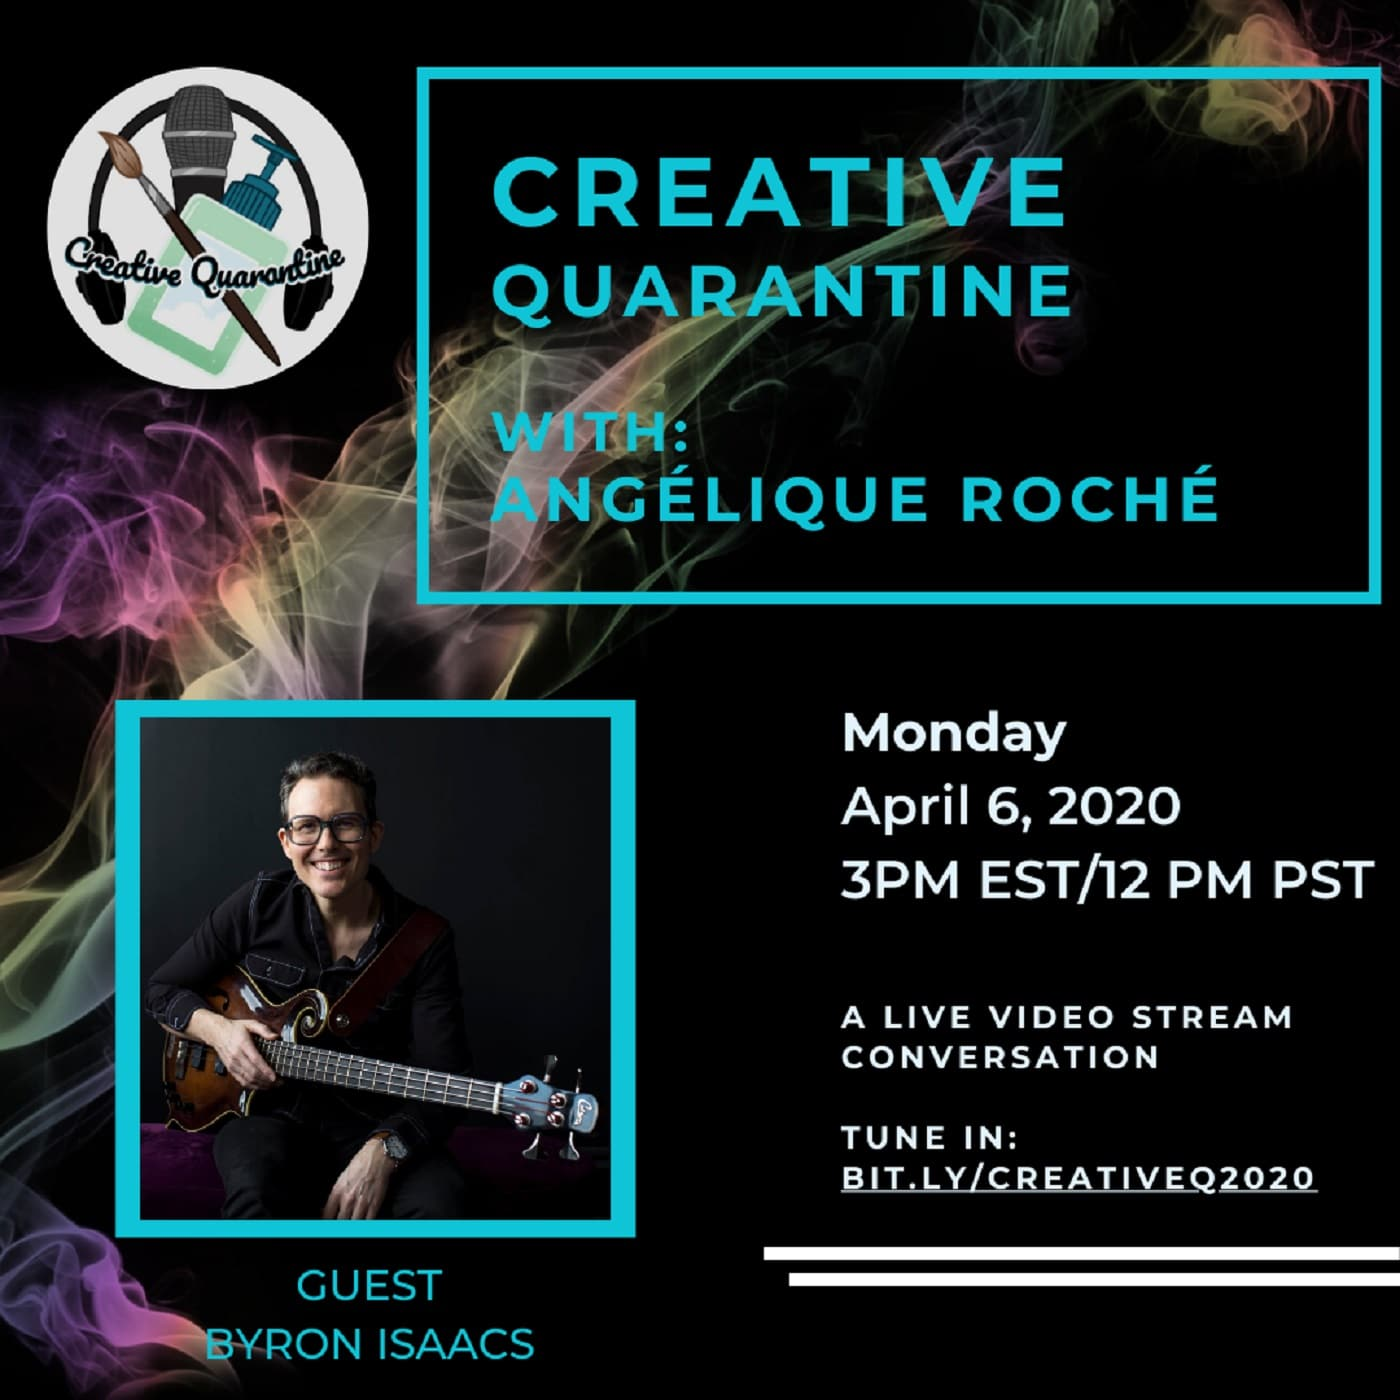 Creative Quarantine - Episode 11: Musician/Songwriter, Byron Isaacs